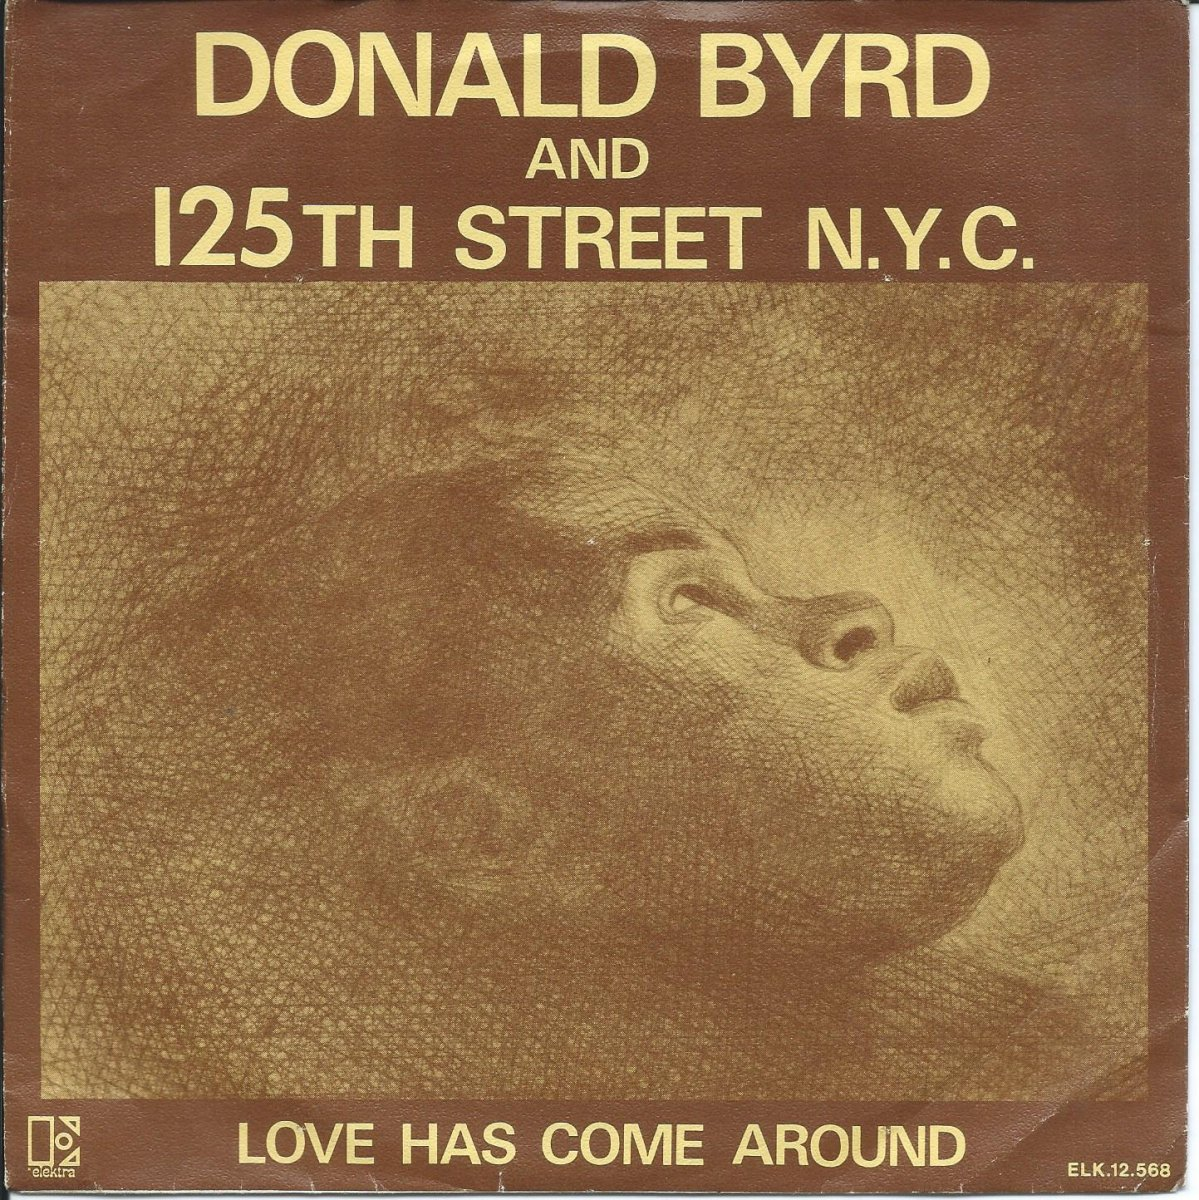 DONALD BYRD & 125TH STREET, N.Y.C. / LOVE HAS COME AROUND / LOVE FOR SALE (7